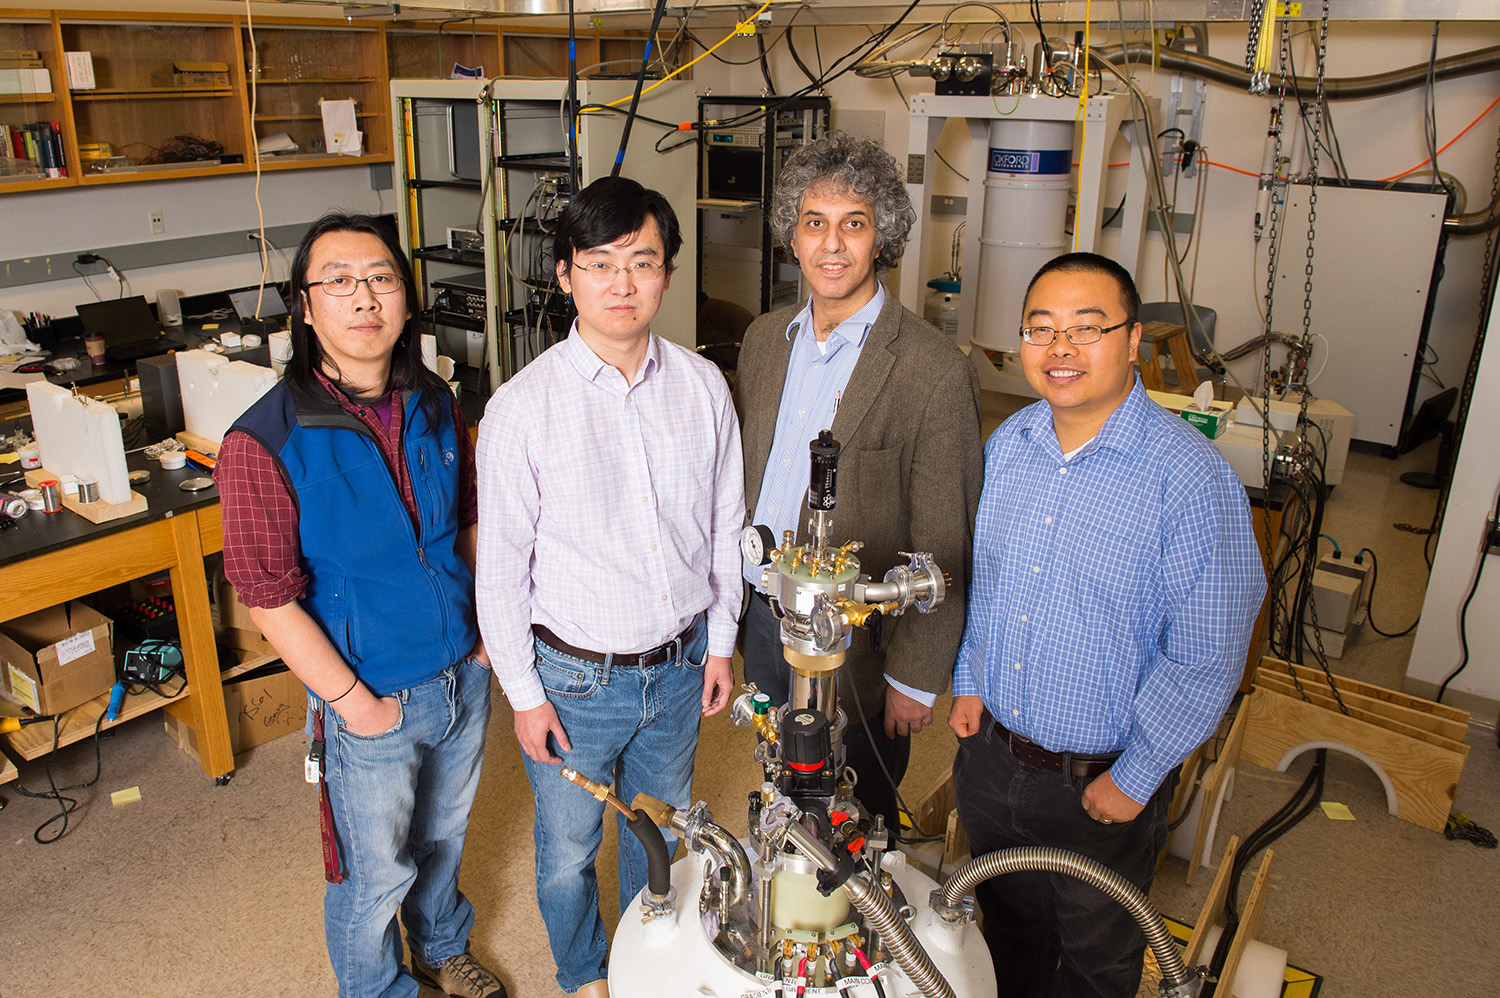 Physics researchers at the University of Michigan have confirmed the strange electrical behavior of a material called samarium hexaboride. The compound, it turns out, is a topological insulator. Gang Li, postdoctoral researcher; Kai Sun, assistant professor; Cagliyan Kurdak, professor; and Lu Li, assistant professor, stand in front of their experimental set-up. Image credit: Daryl Marshke, Michigan Photography